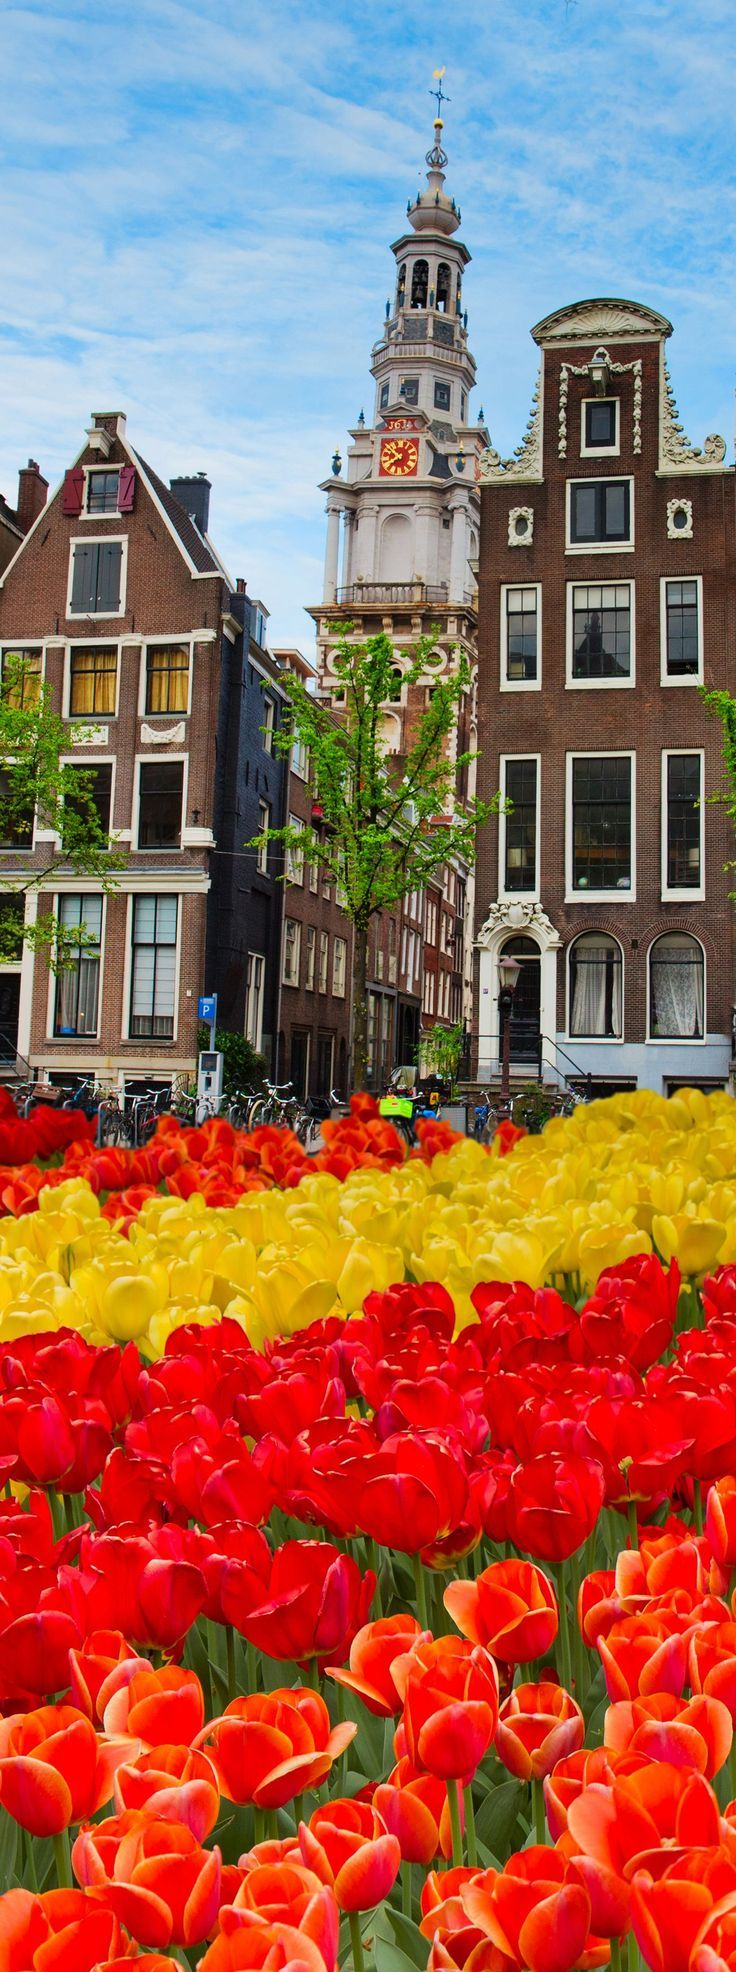 The Netherlands Travel Inspiration - I loved the short trip to Amsterdam I took a few years ago. Can't wait to get back there soon!Tulips and frontages of old buildings in Amsterdam, Netherlands